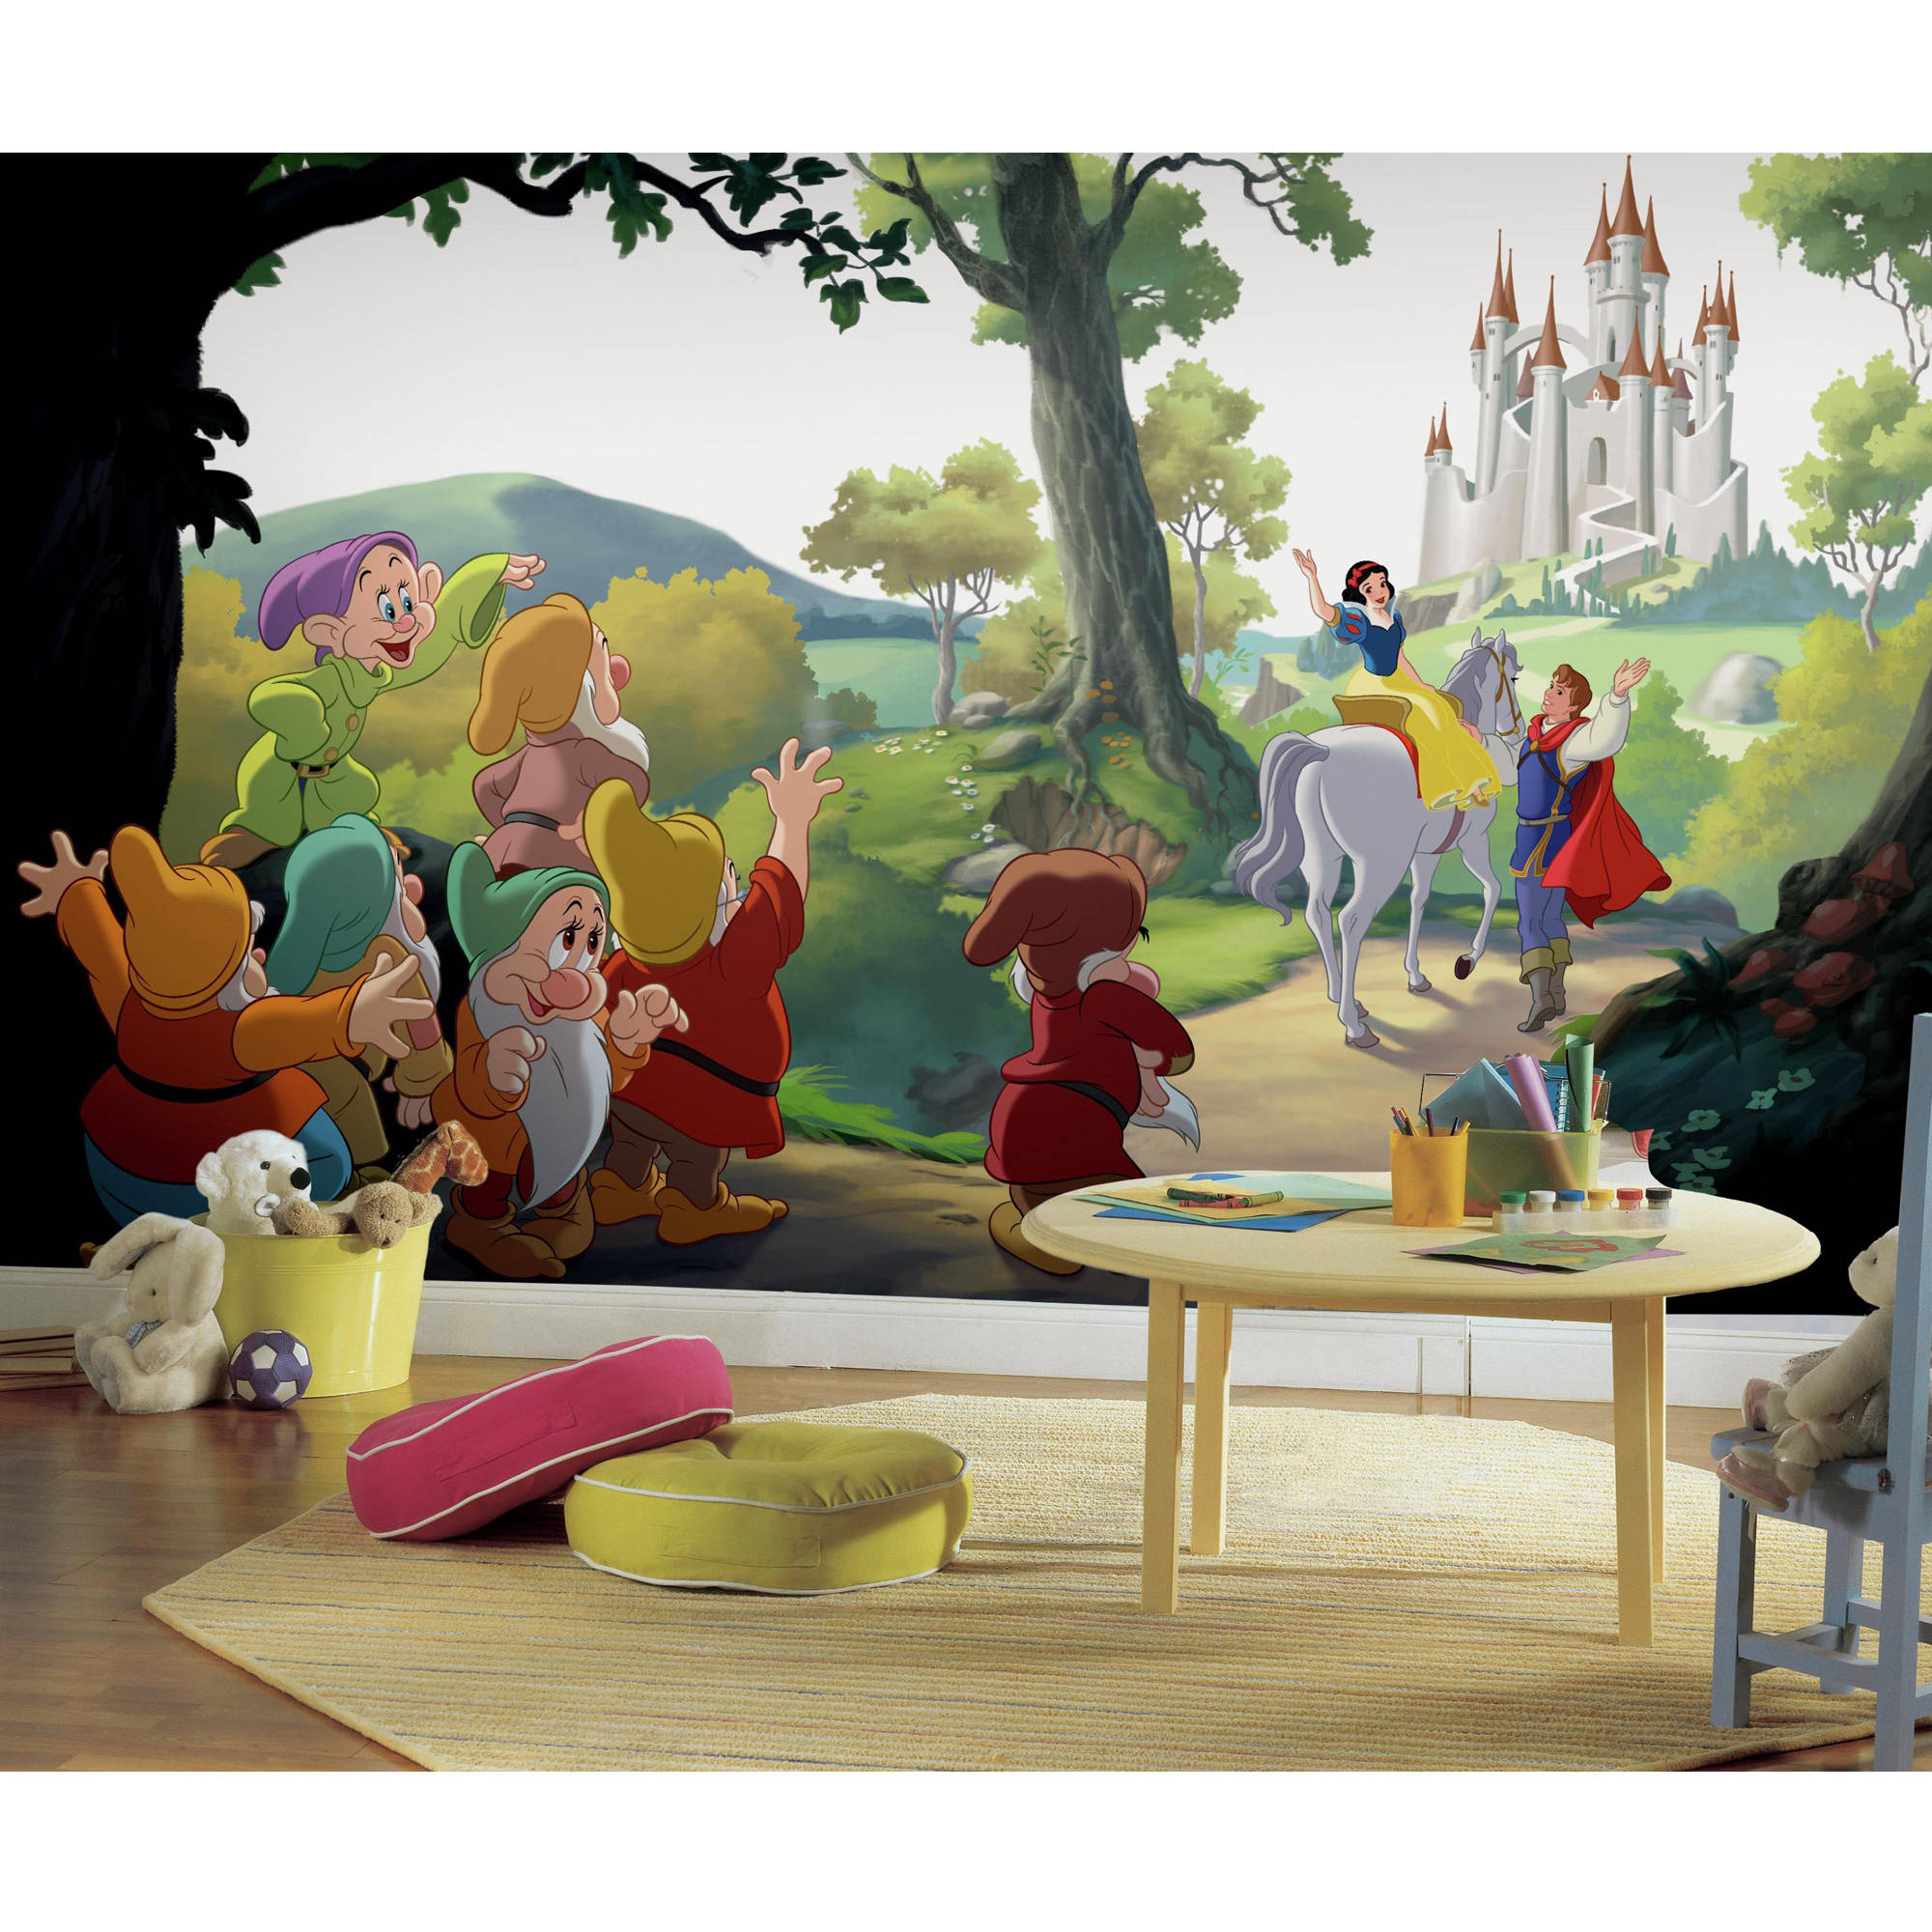 "RoomMates Disney Princess Snow White ""Happily Ever After"" XL Chair Rail Prepasted Ultra-Strippable Mural, 6' x 10.5'"